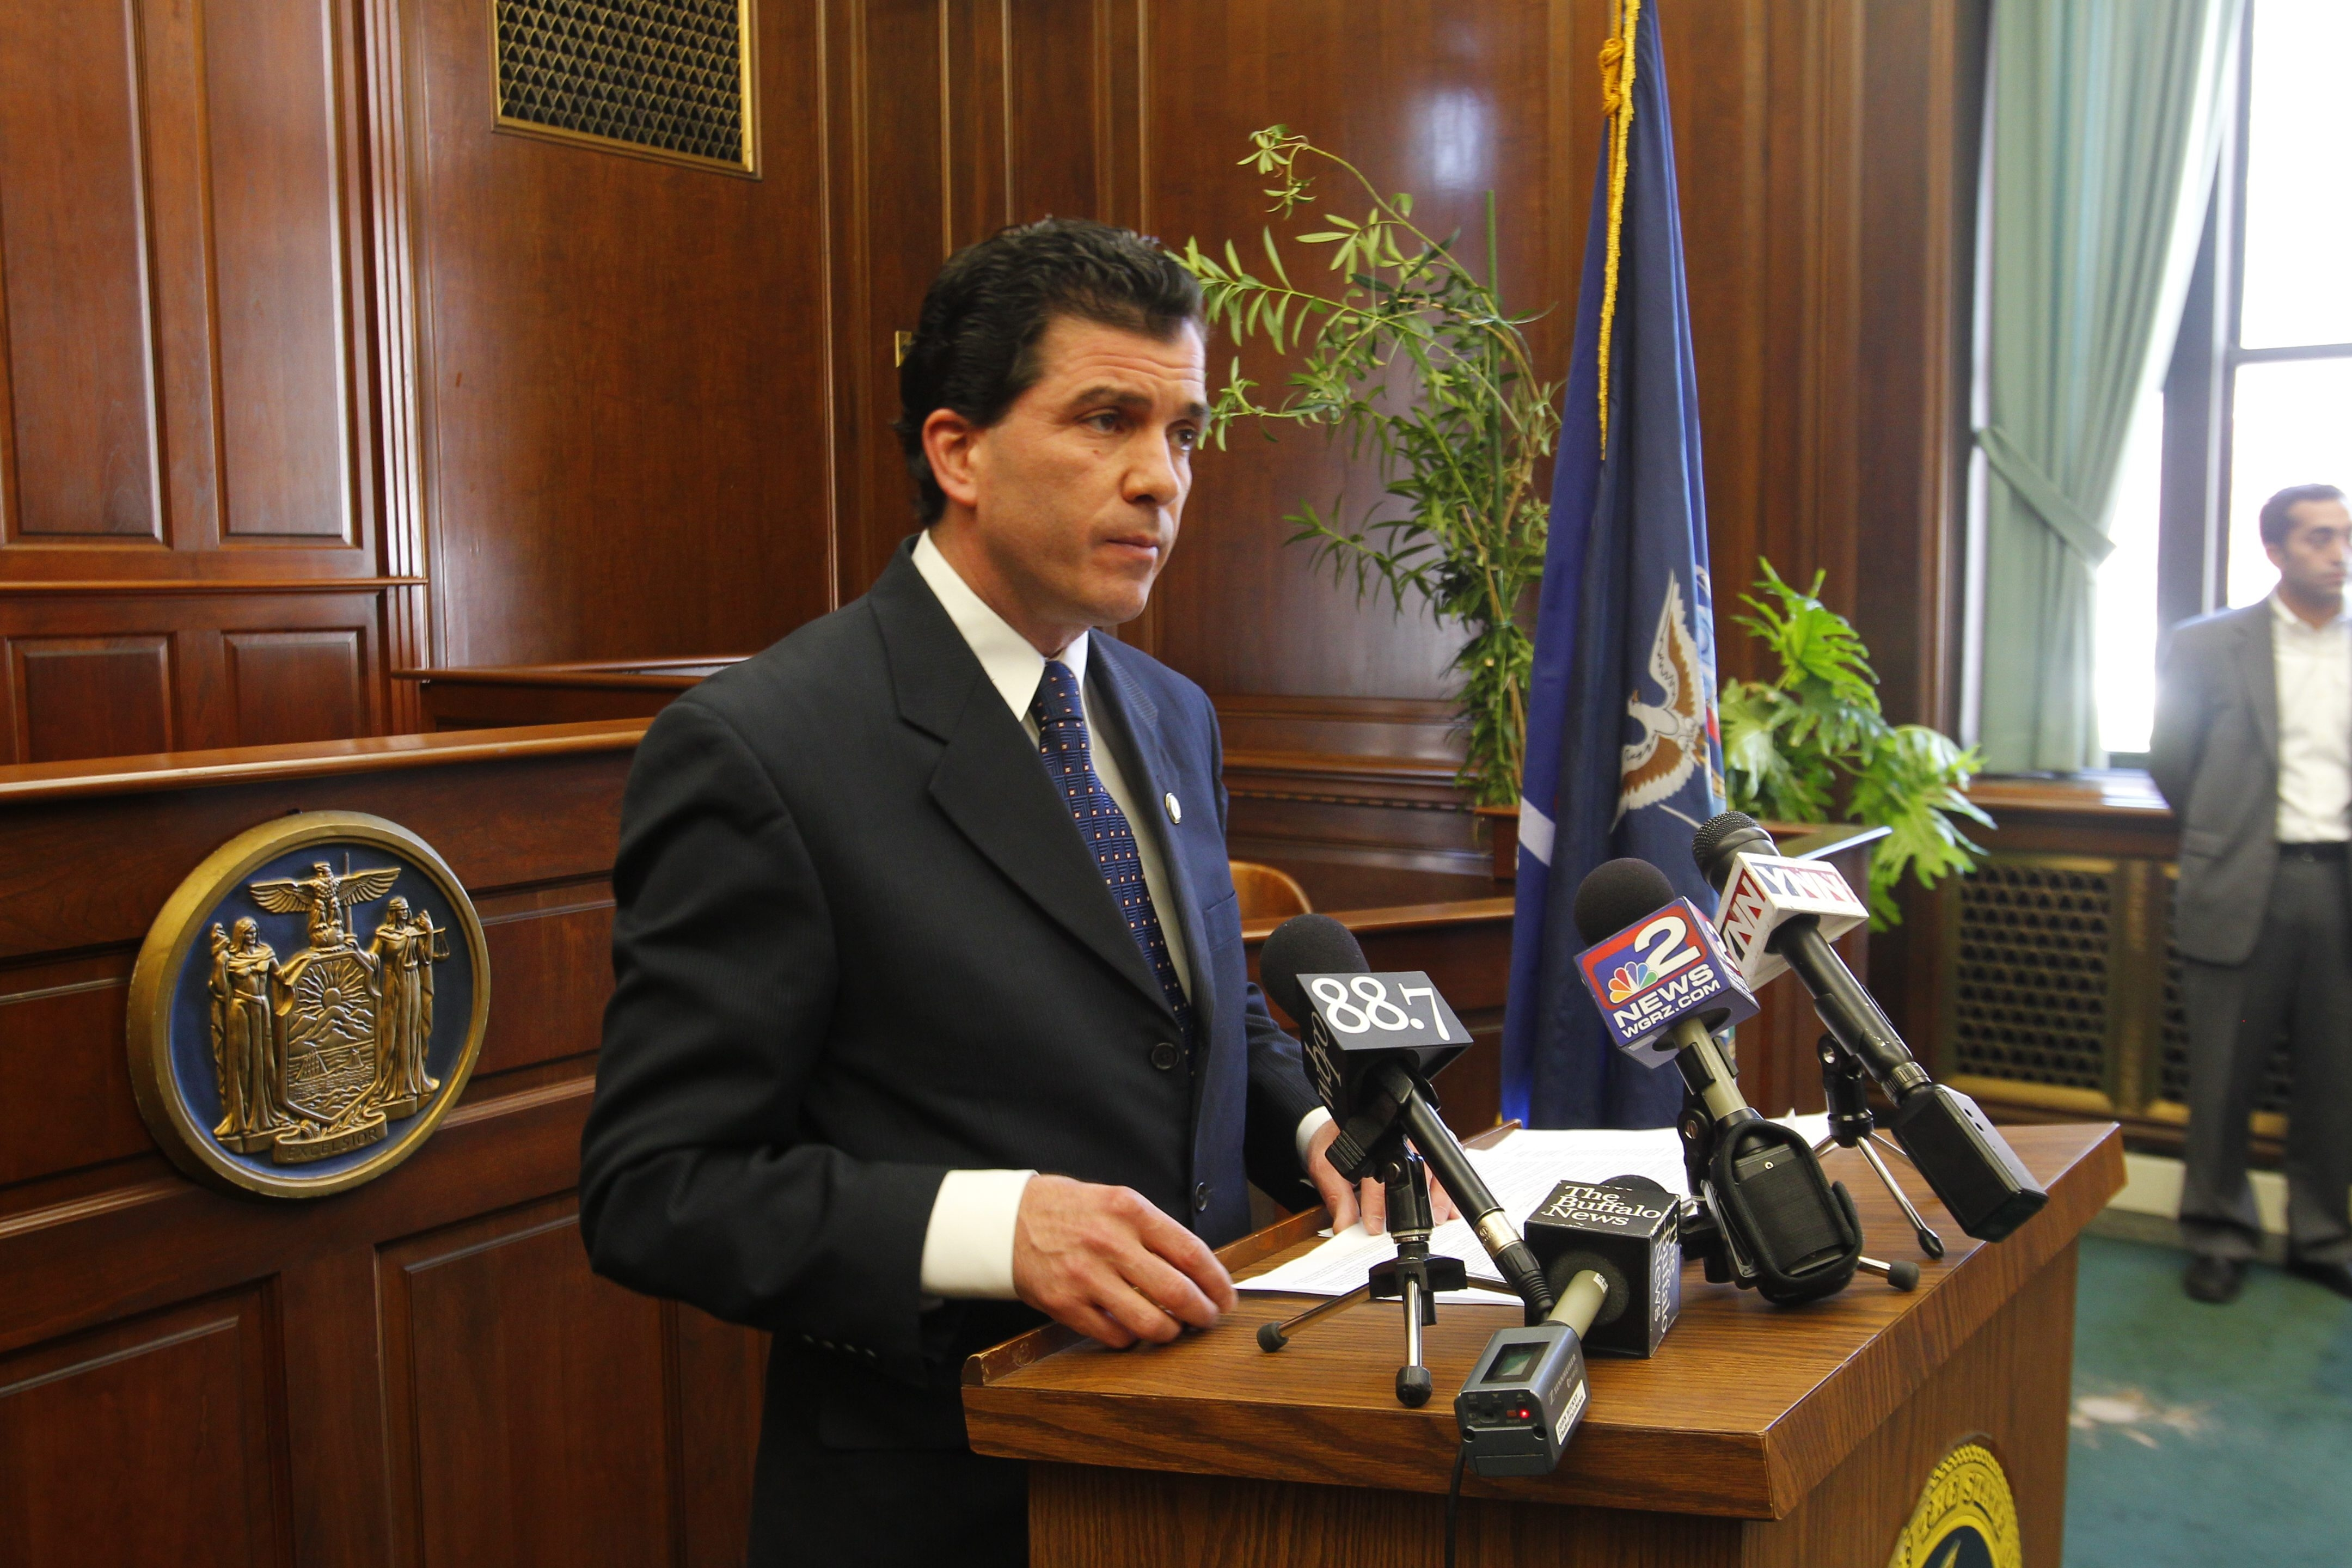 Buffalo News file photo    Republican State Sen. Mark J. Grisanti of Buffalo has often said he would be thrilled to have the political support of Gov. Andrew M. Cuomo, the state's top Democrat.